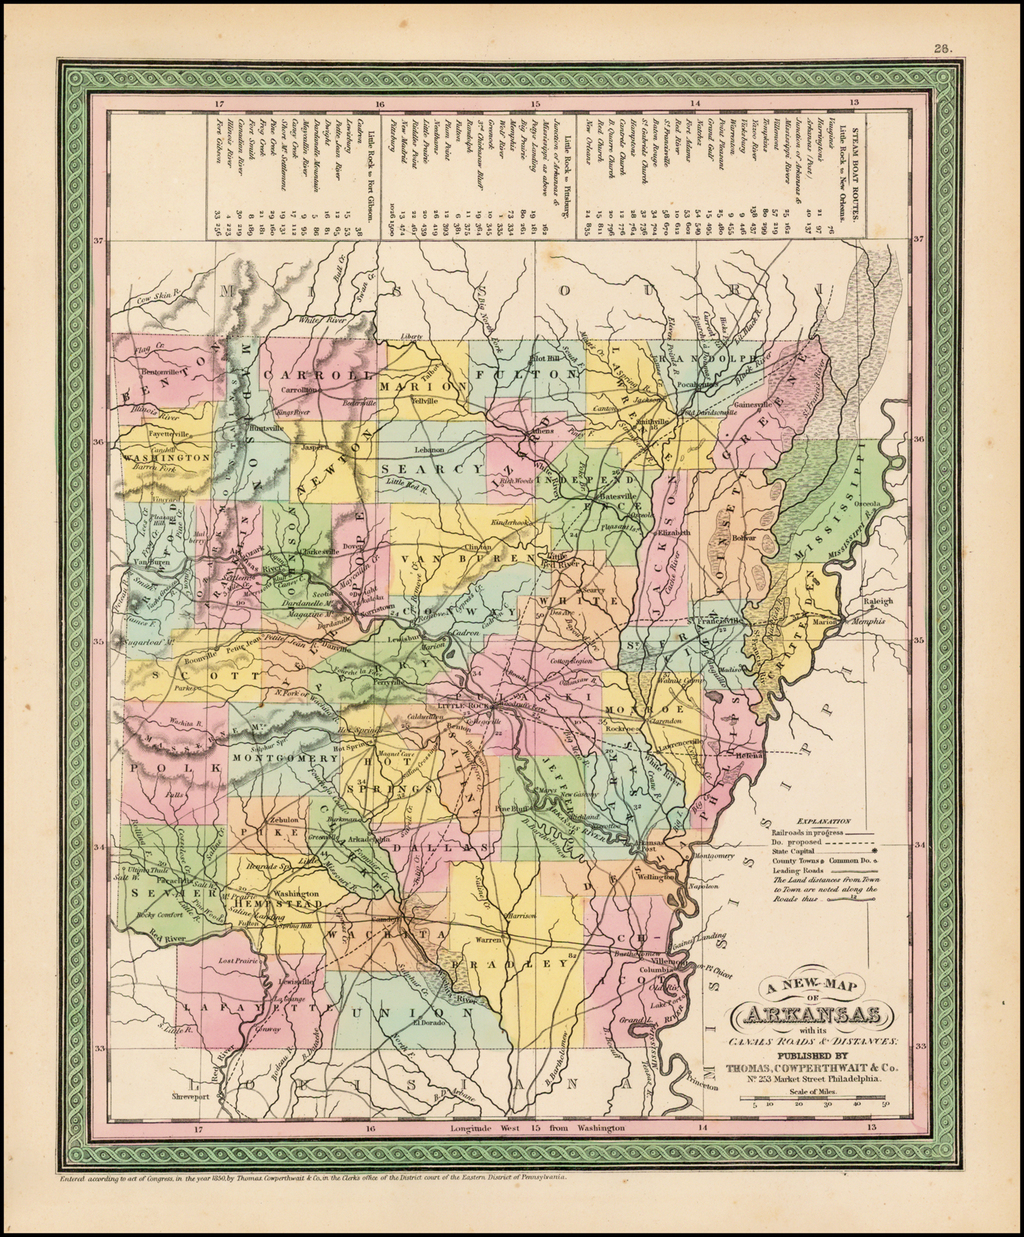 A New Map of Arkansas with its Canals Roads & Distances . . .   By Thomas, Cowperthwait & Co.